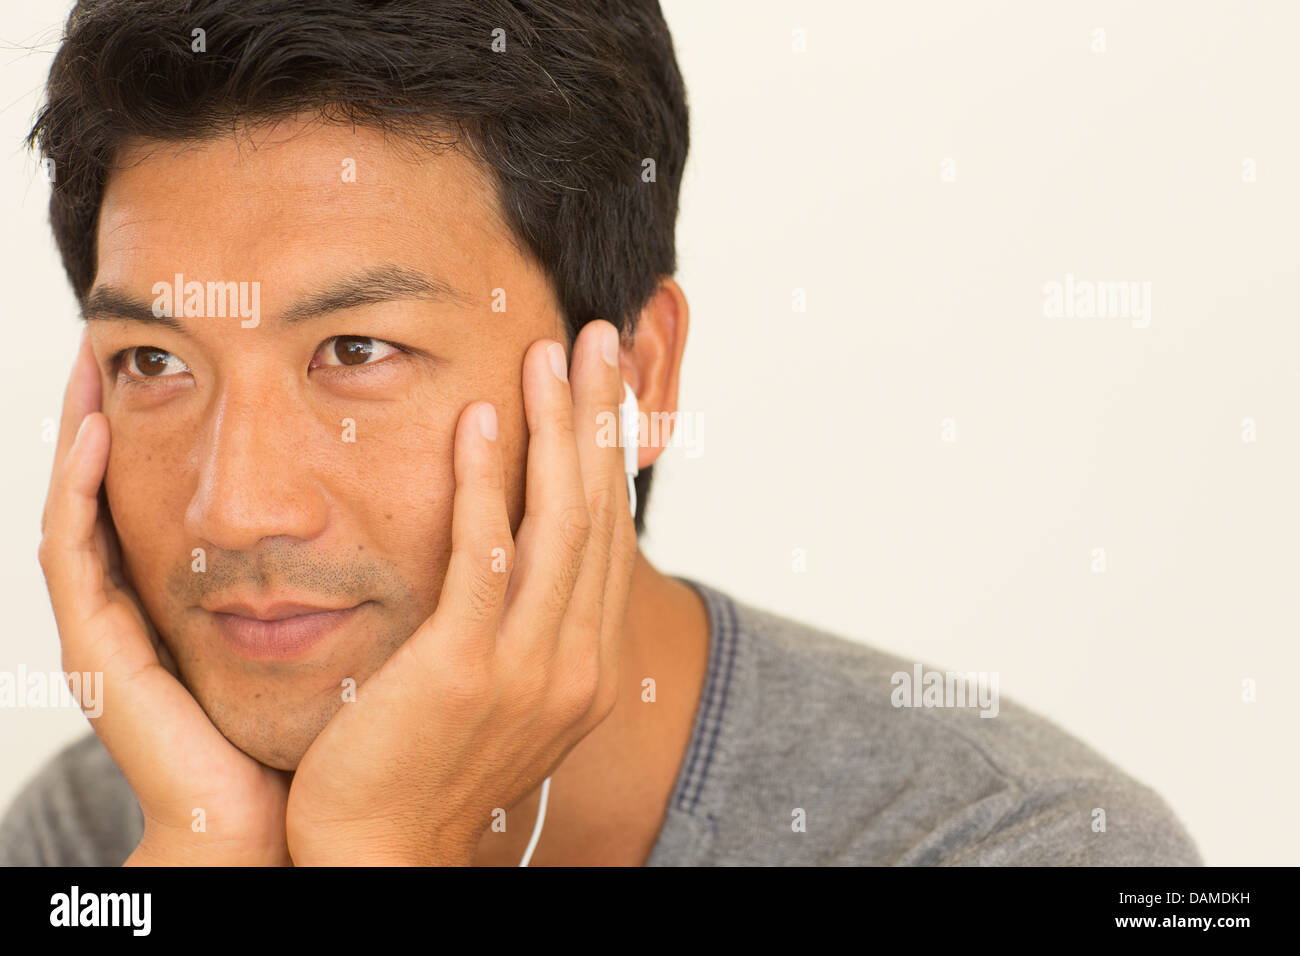 Man resting chin in hands - Stock Image